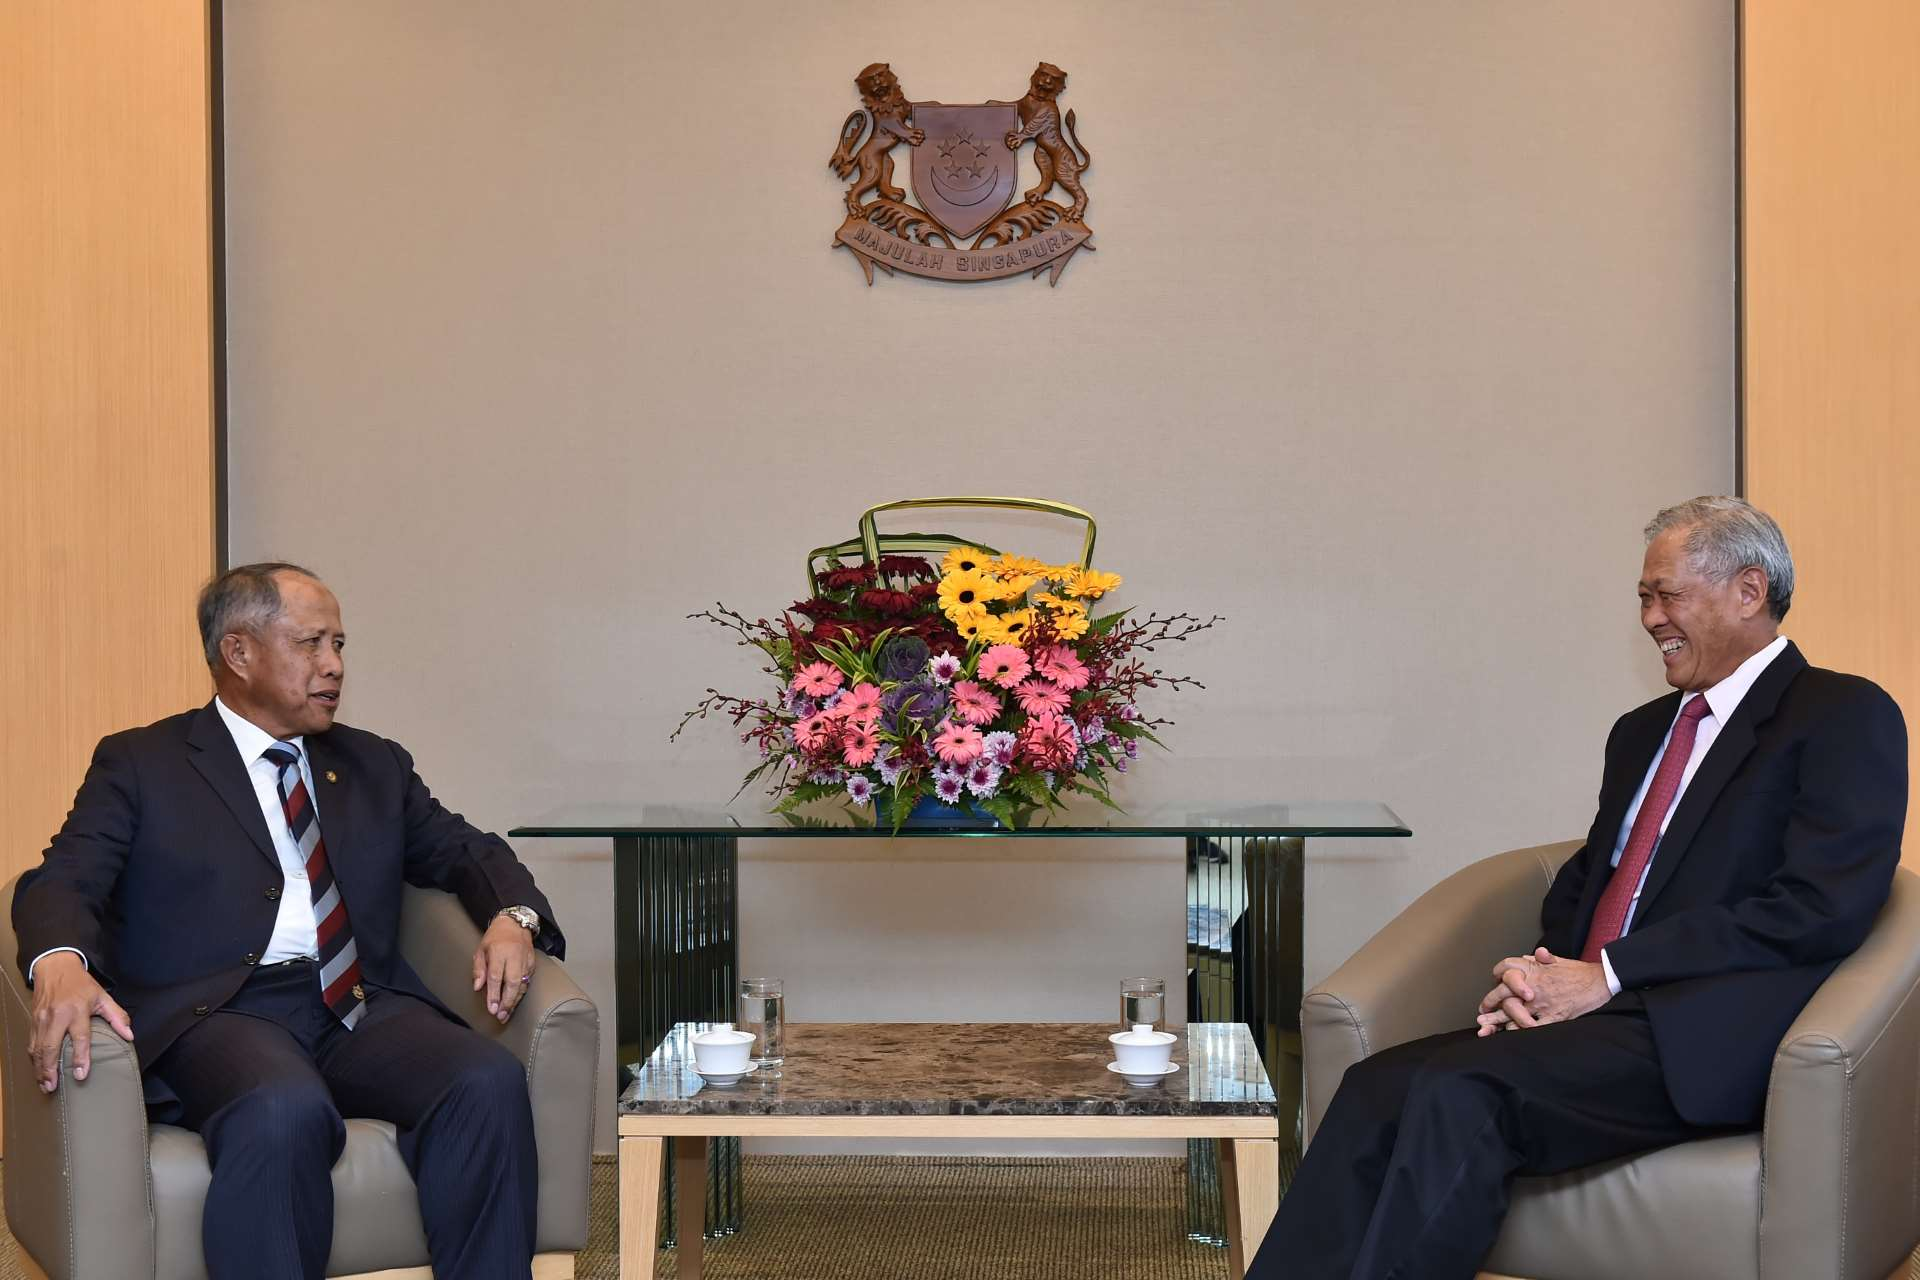 Brunei Defence Minister II Pehin Datu Lailaraja Major General (MG)(Rtd) Dato Paduka Seri Haji Awang Halbi bin Haji Md Yussof (left) calling on Minister for Defence Dr Ng Eng Hen (right) at the Ministry of Defence (MINDEF).